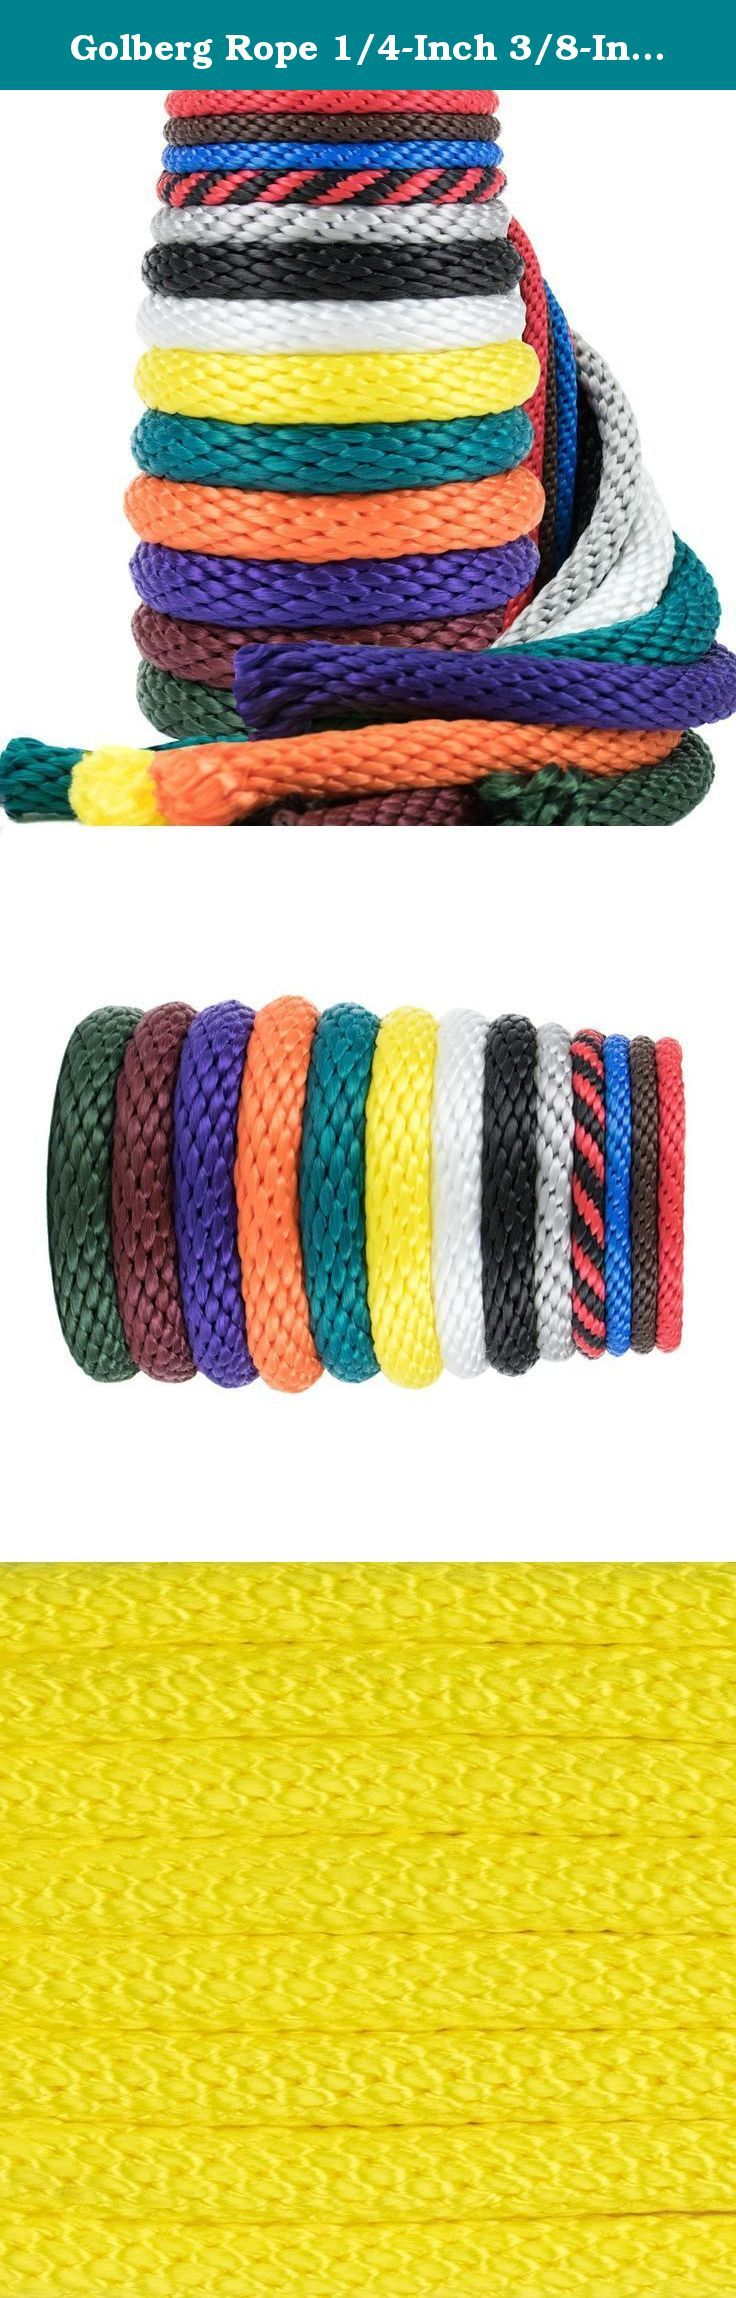 Golberg Rope 1/4-Inch 3/8-Inch 1/2-Inch 5/8-Inch 5/16 - Inch Solid Braid Utility Rope Made in USA - Multifilament Polypropylene MFP Derby Rope Boating Rope - Mildew Resistant - 100 X YELLOW. If you're looking for basic, affordable, all-purpose and all-weather utility rope, this is it. Golberg Ropes's Multifilament Polypropylene MFP Rope, you will always be prepared to tie down or hoist up that deer from hunting, tie that pesky hose in your garage & hang it up, secure your boat to the dock…